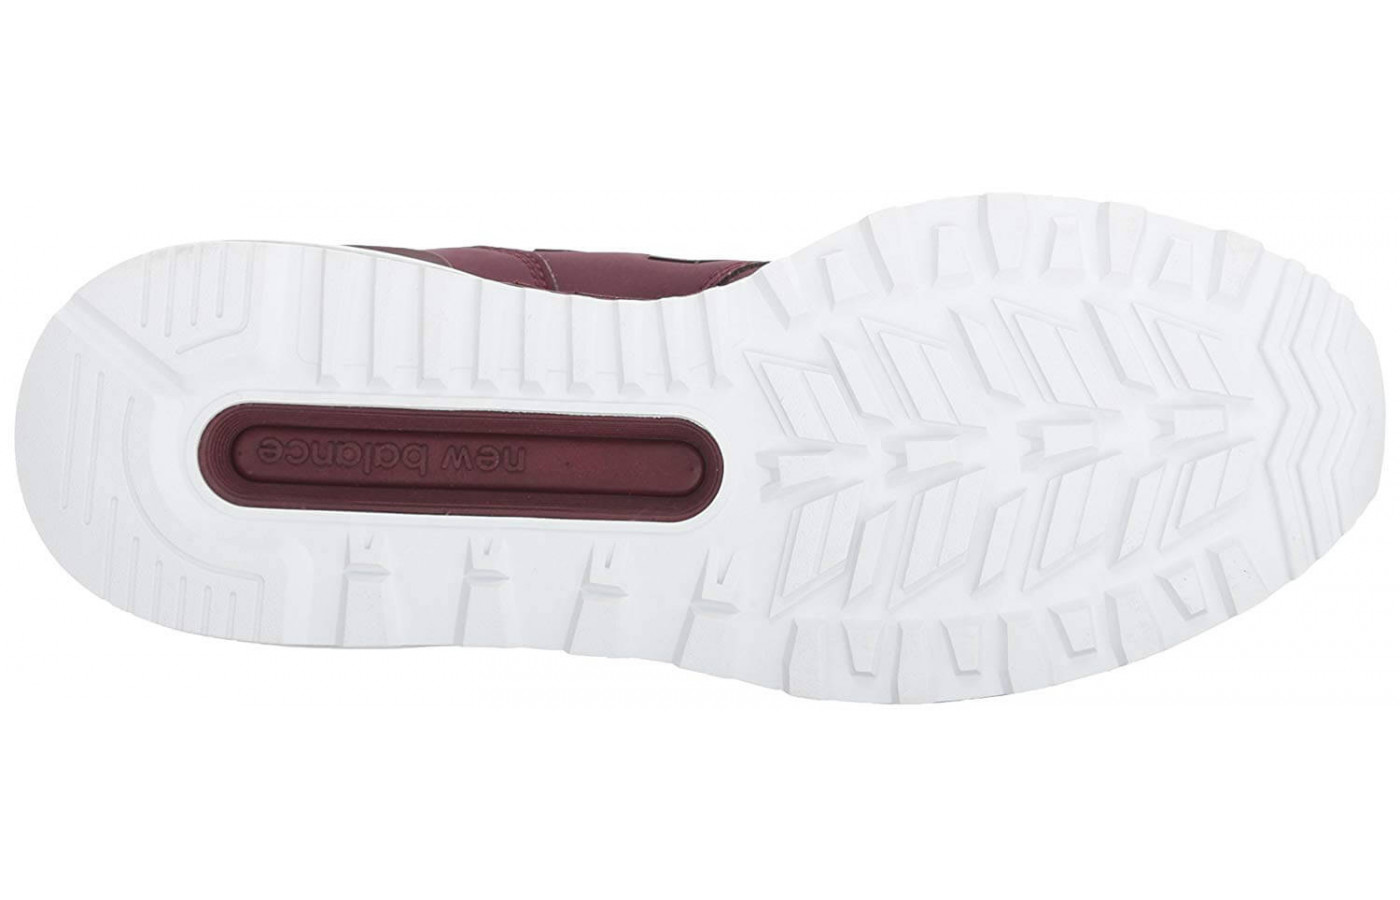 The 574 Sport's rubber outsole provides a strong grip on everyday surfaces